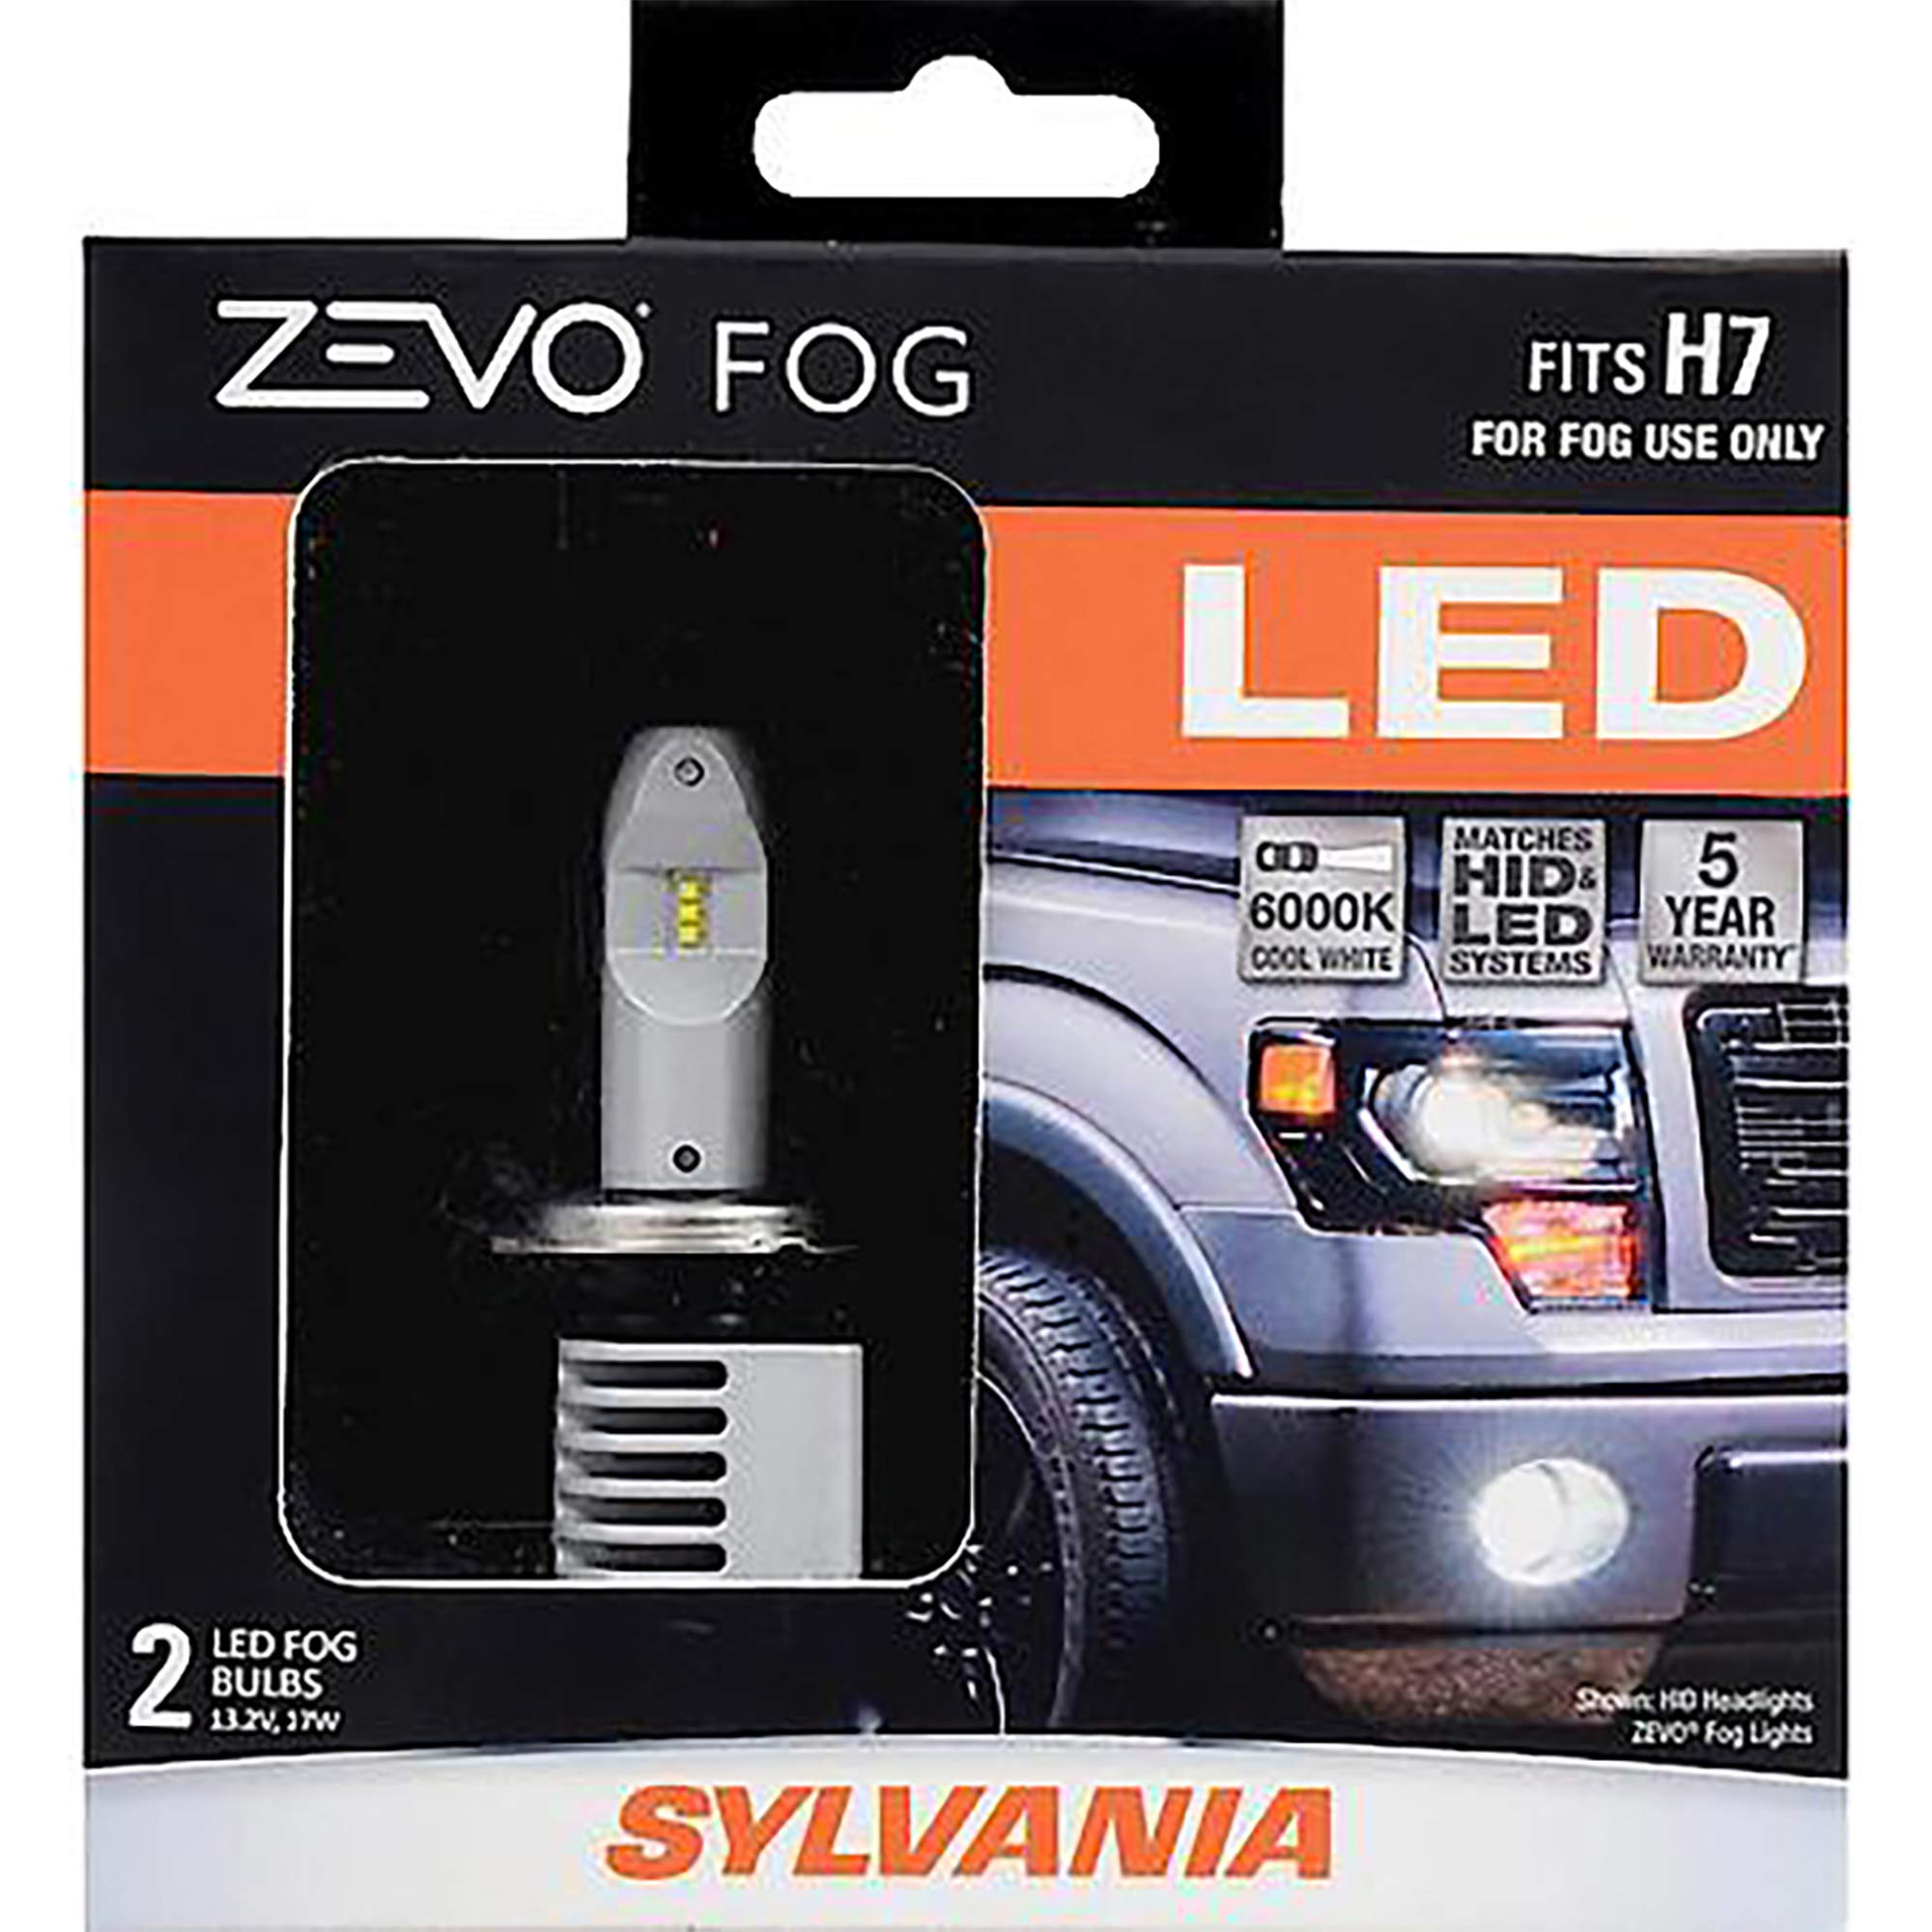 SYLVANIA - H7 ZEVO FOG LED - Premium Quality Fog Lights, Bright White LED Light Output, Matches HID & LED Headlight Lighting Systems, Added Style & Performance (Contains 2 Bulbs)